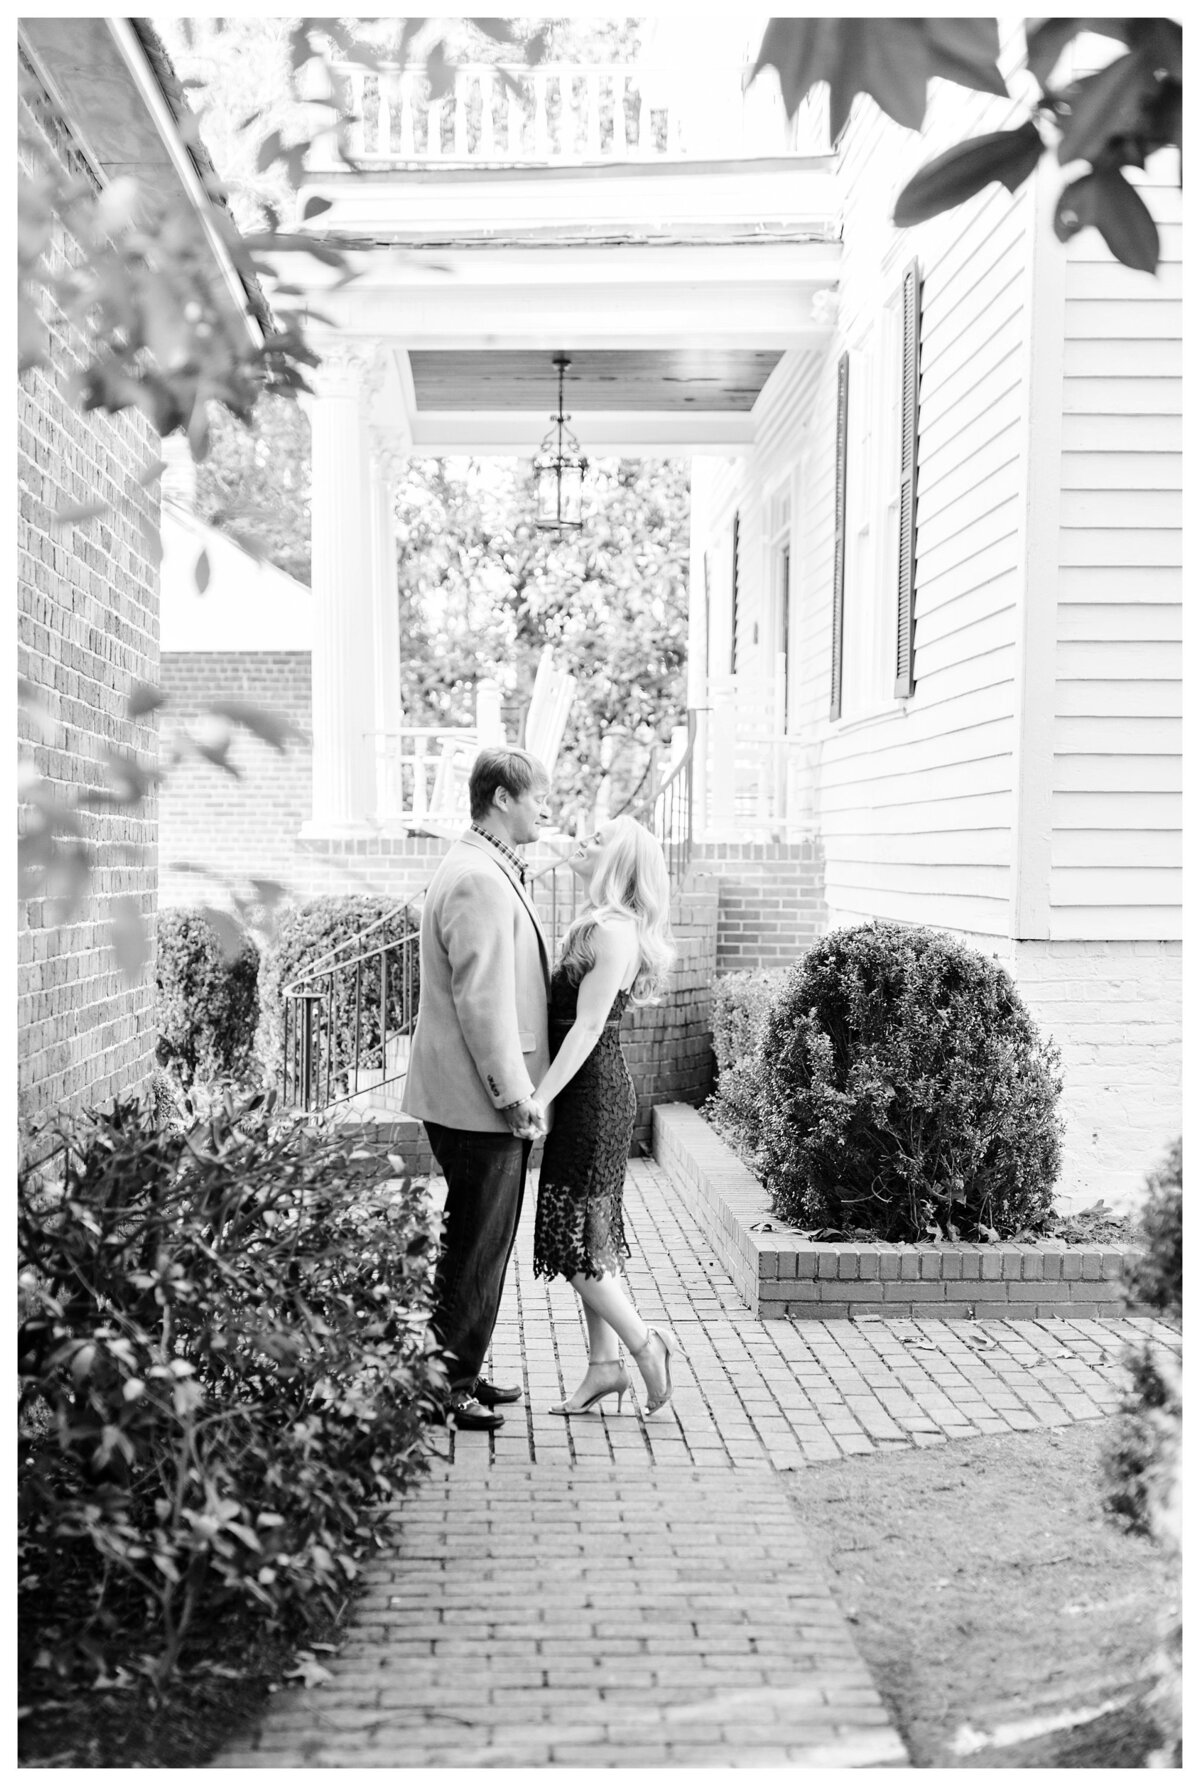 canady-engagements-atlanta-wedding-photographer-19